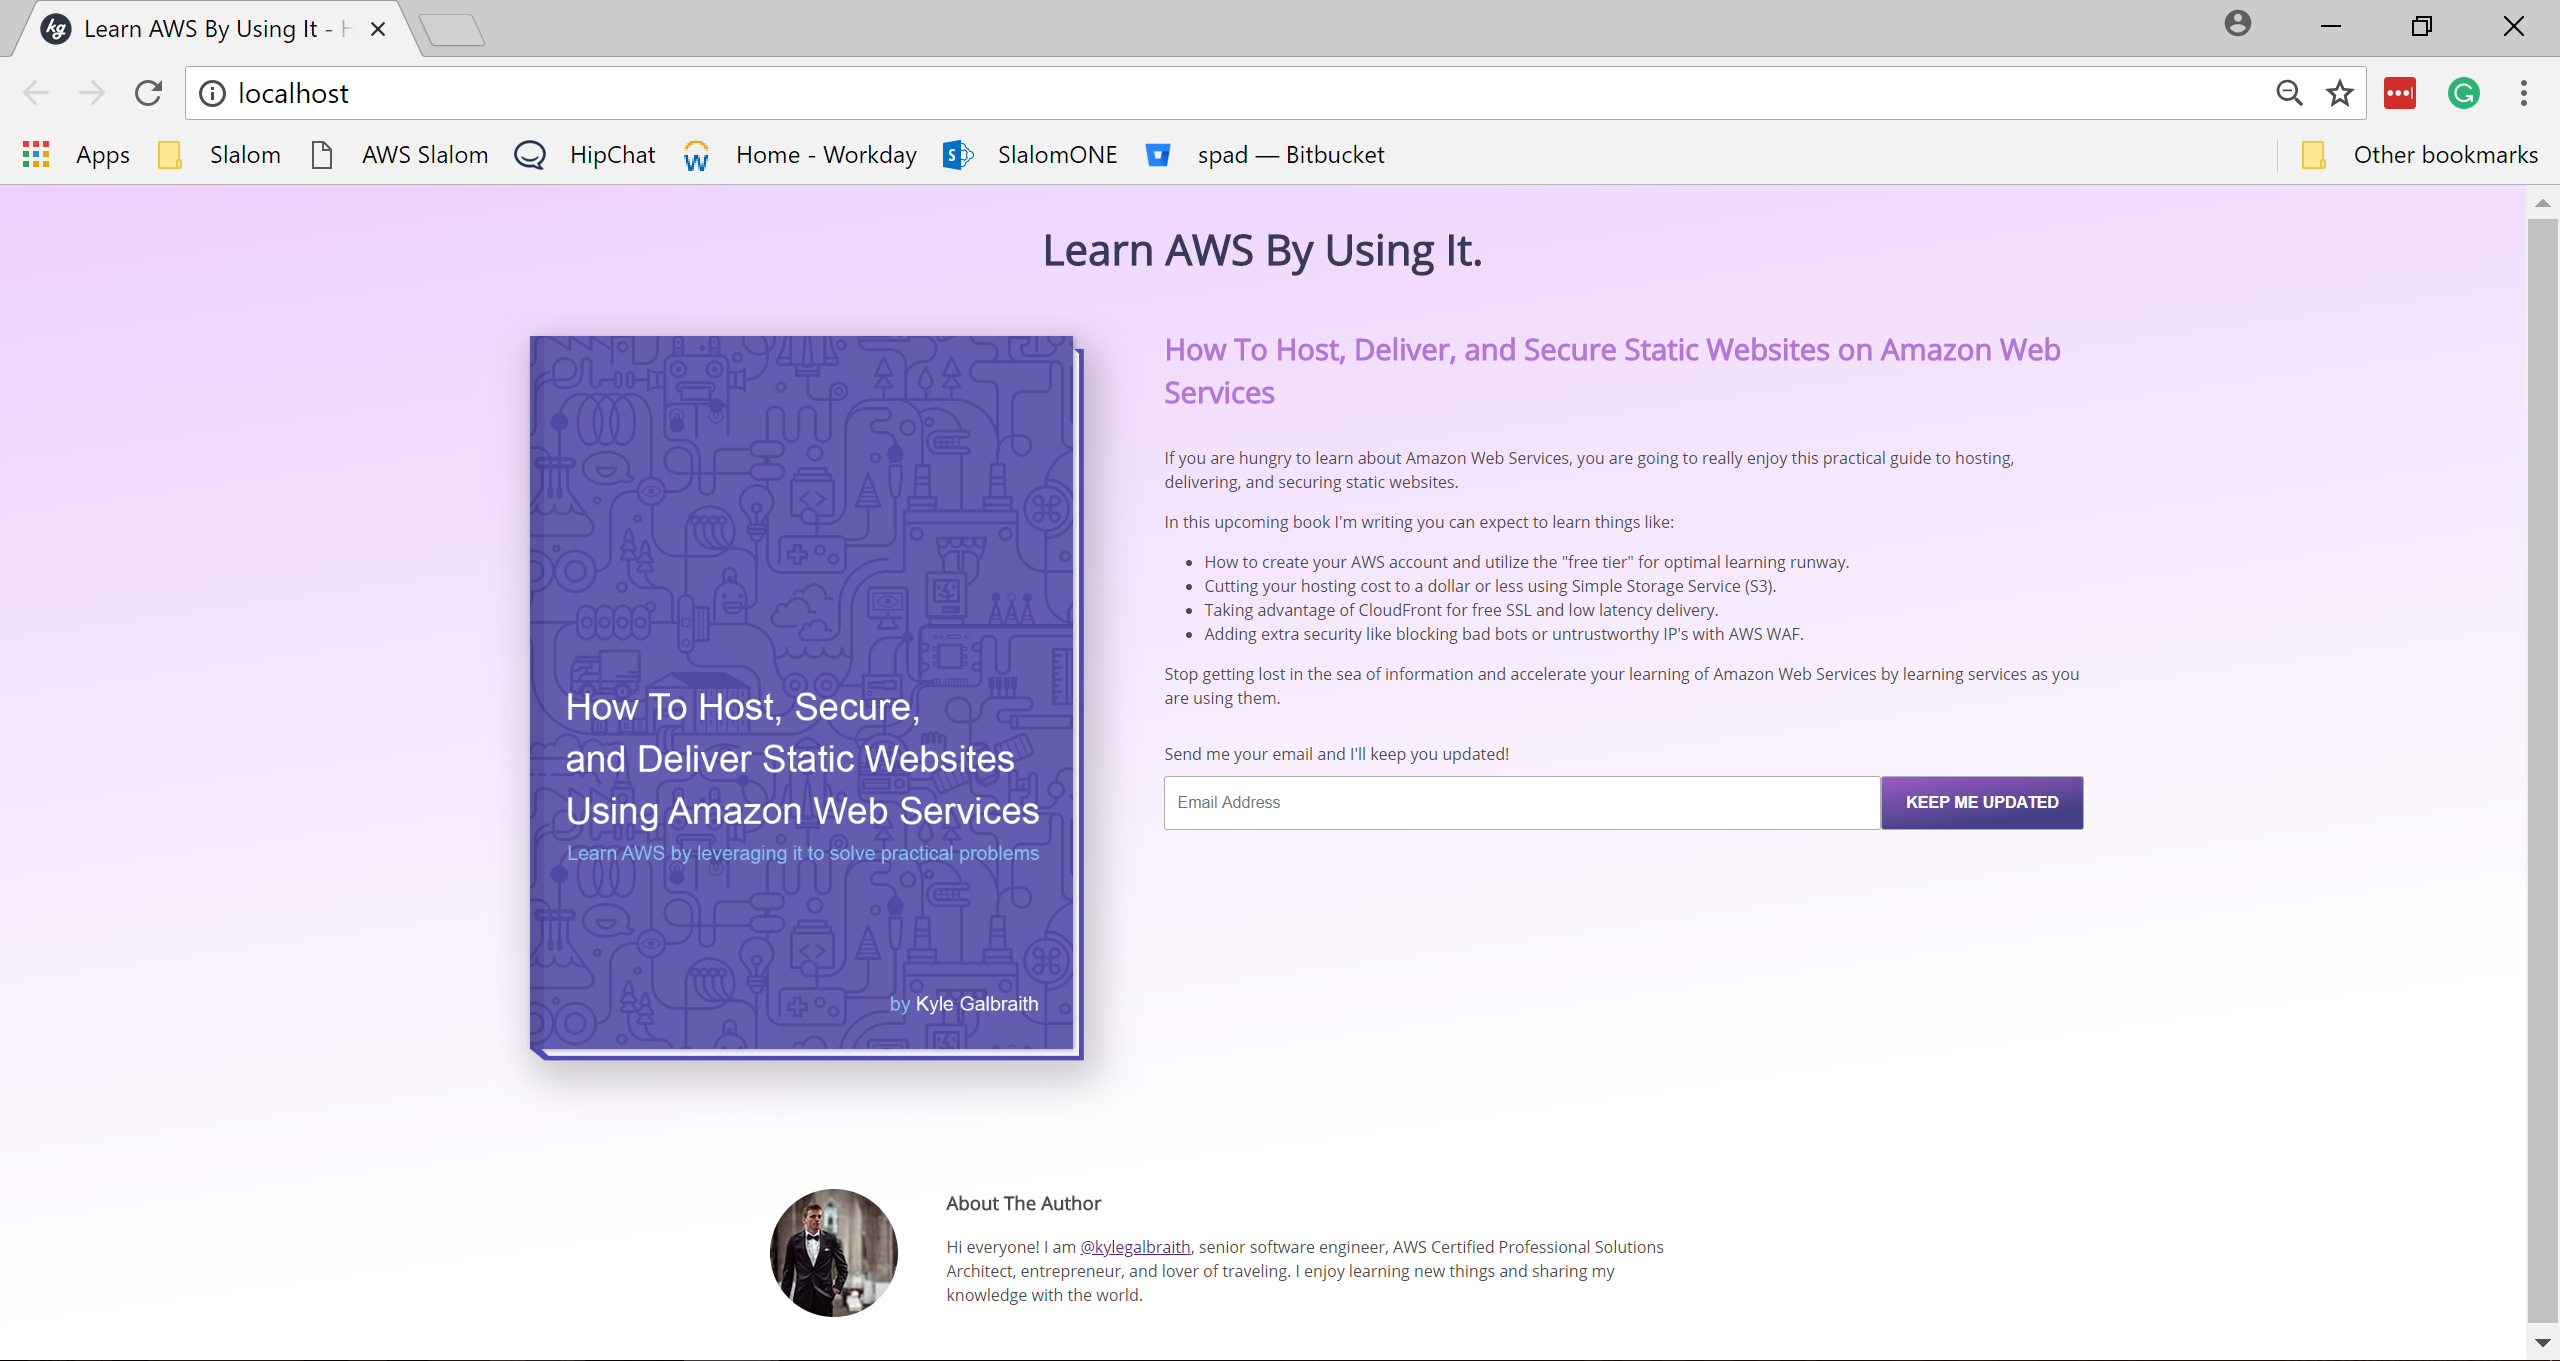 50 Sales and Lessons Learned 3 Months after Writing My First AWS Course